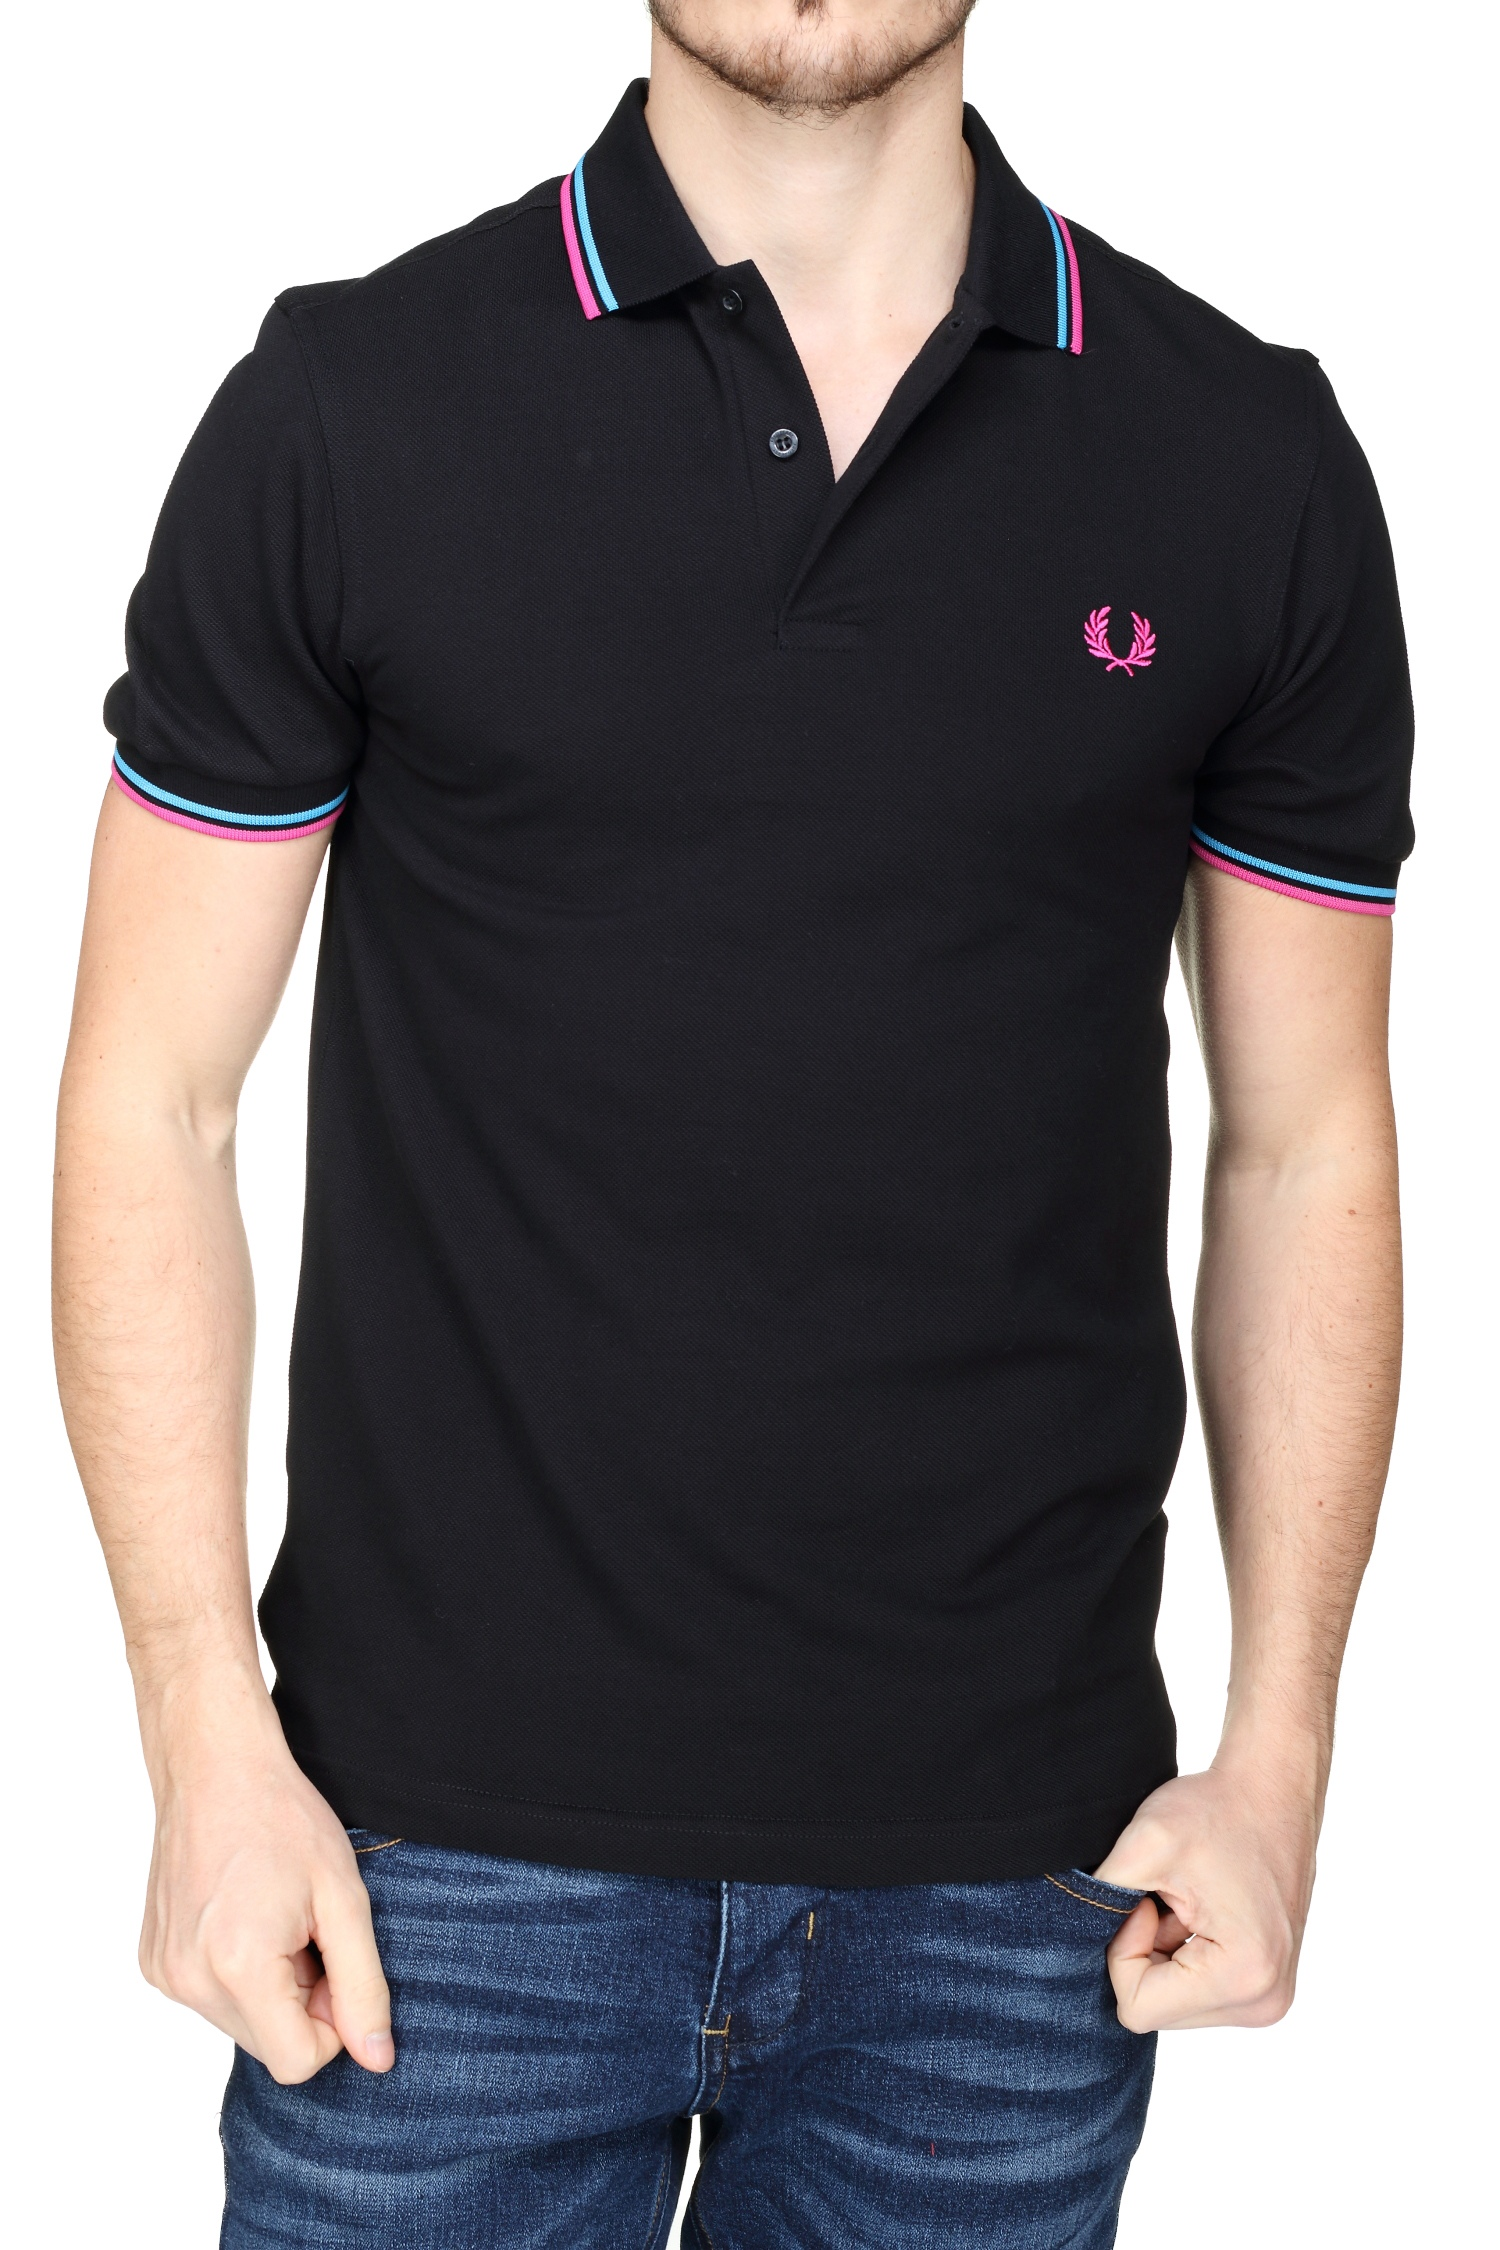 https://www.leadermode.com/182214/fred-perry-fpmm3600-177-black-cyan-mag.jpg